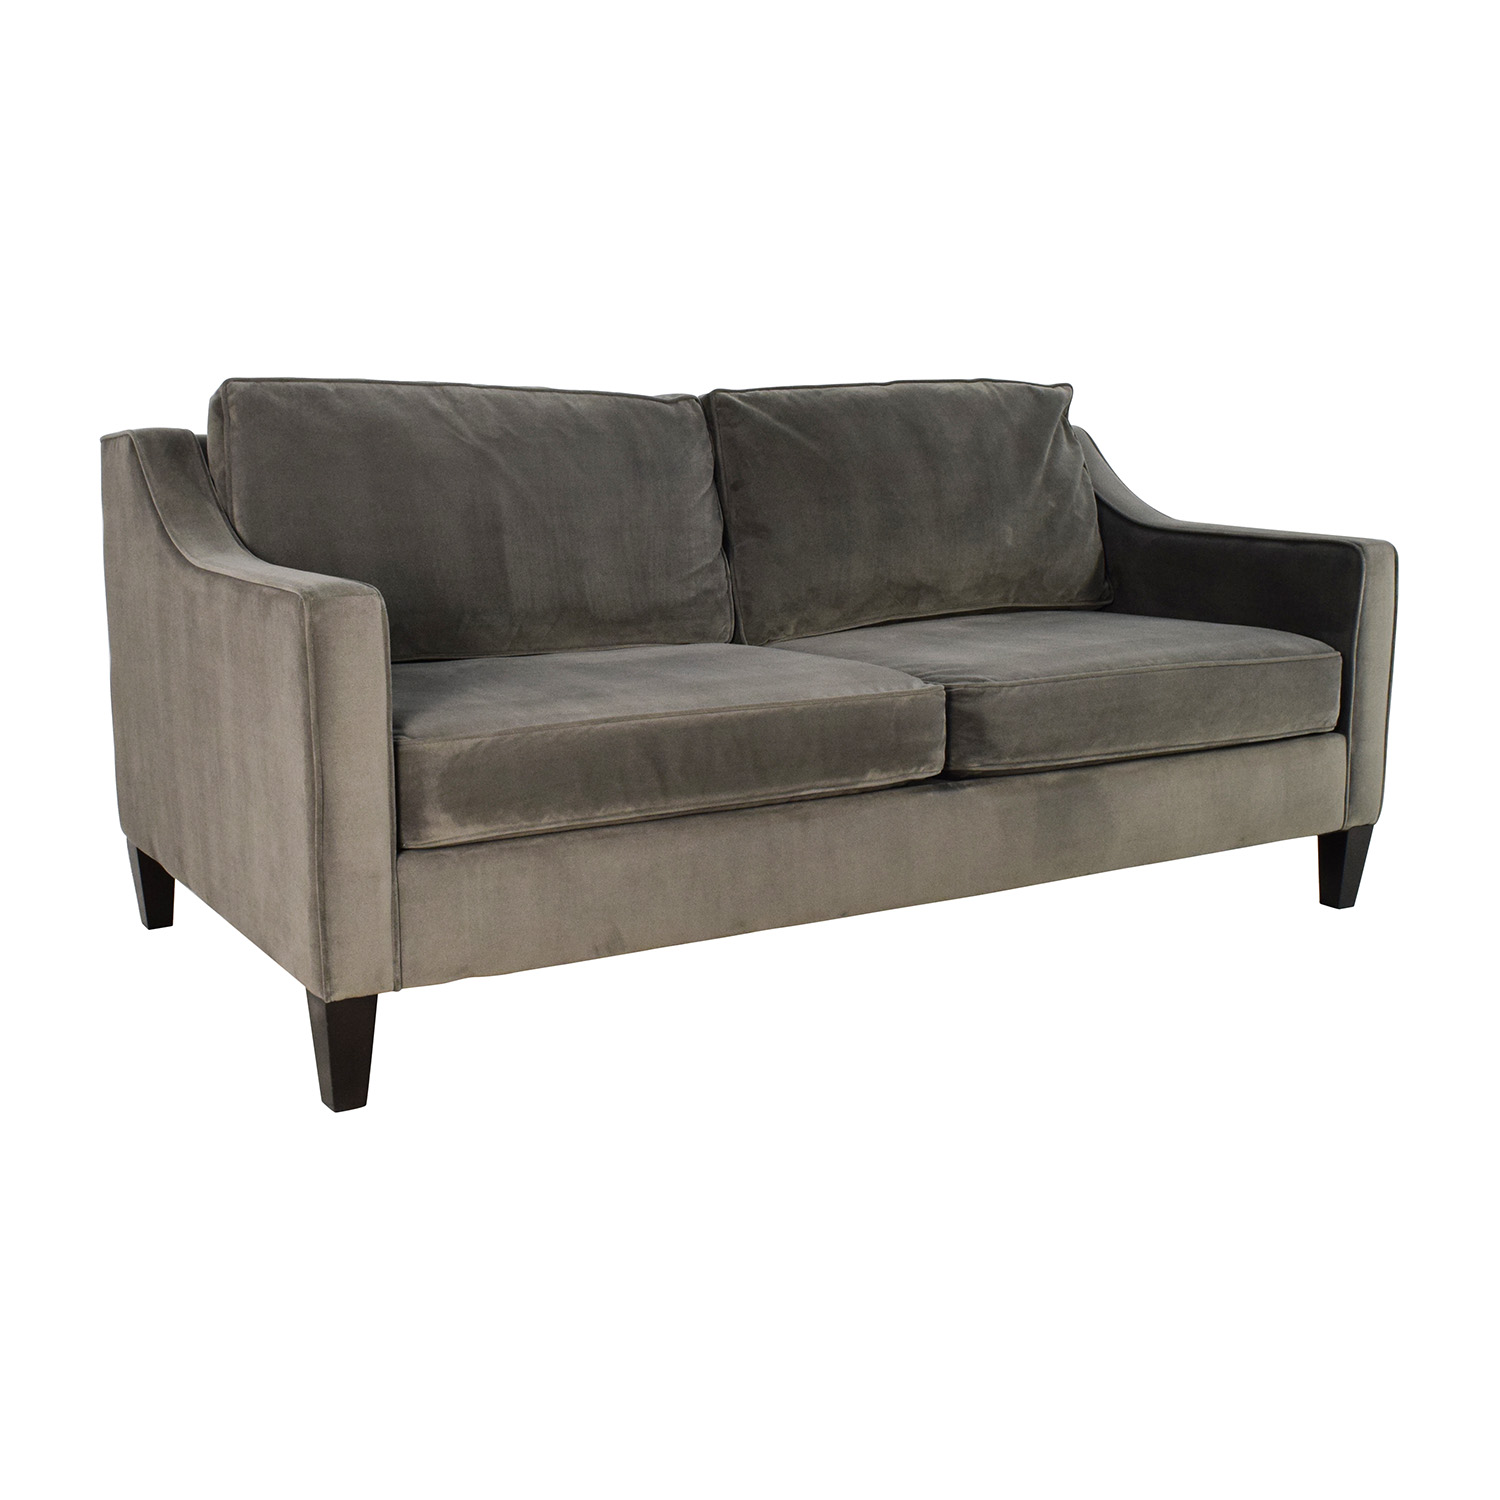 Used West Elm Furniture. West Elm Paidge Sofa Discount Used Furniture .